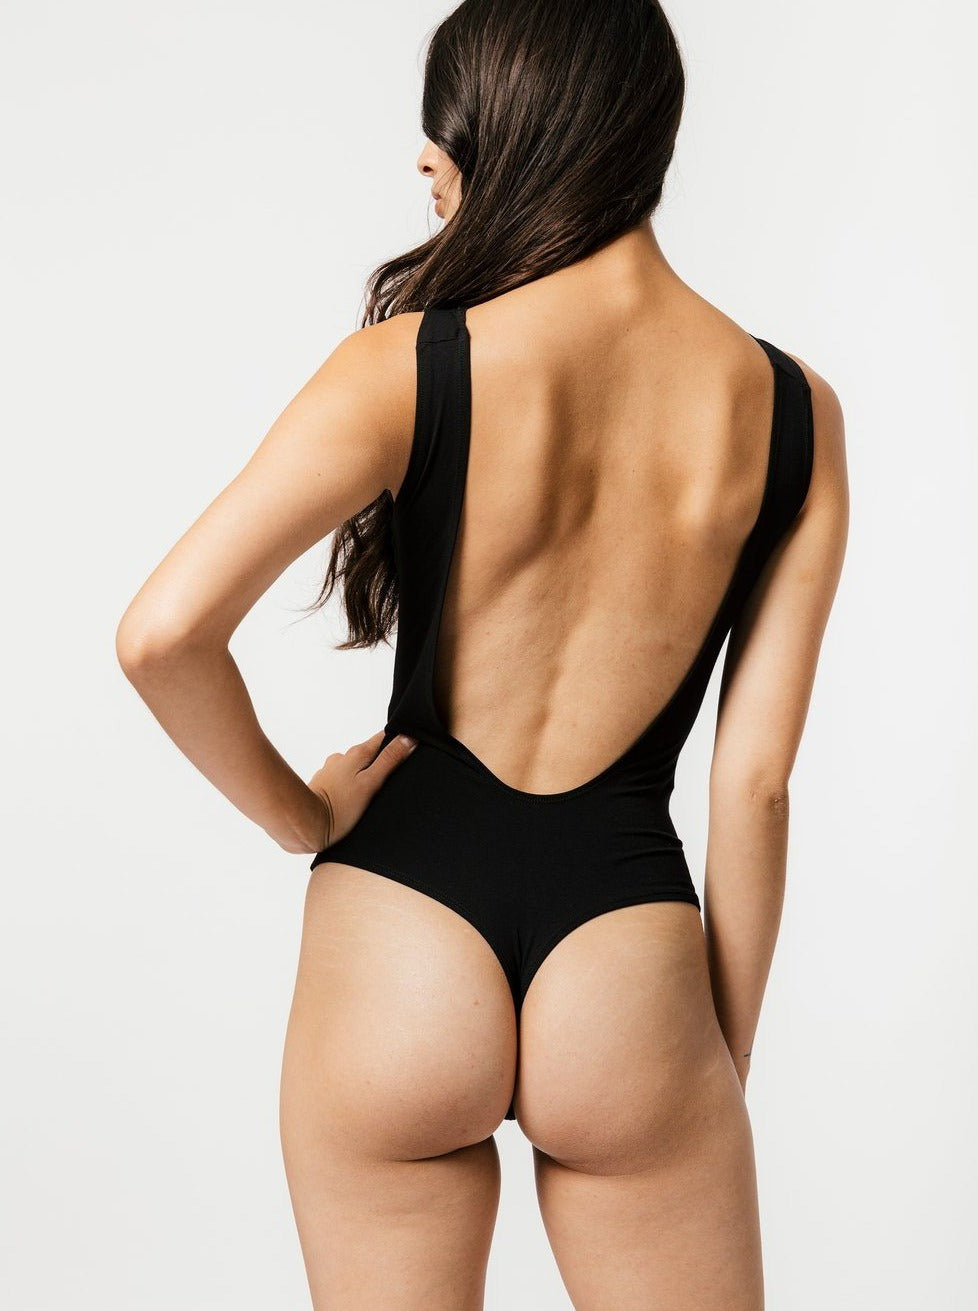 Mary Young - Backless Black Bodysuit - The Lake